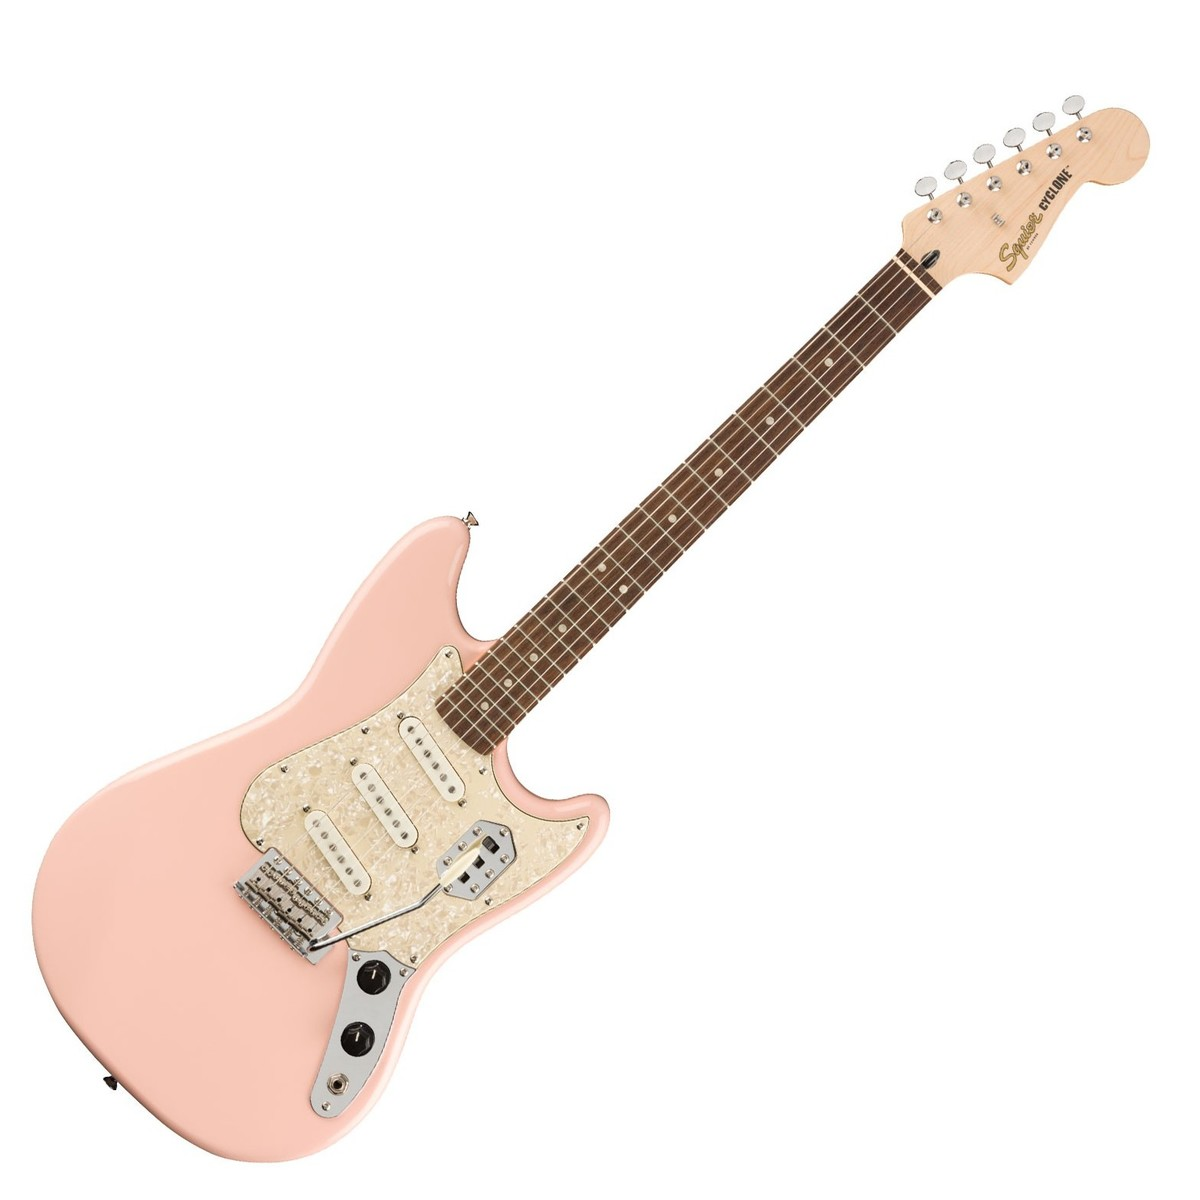 Squier Paranormal Cyclone, Shell Pink